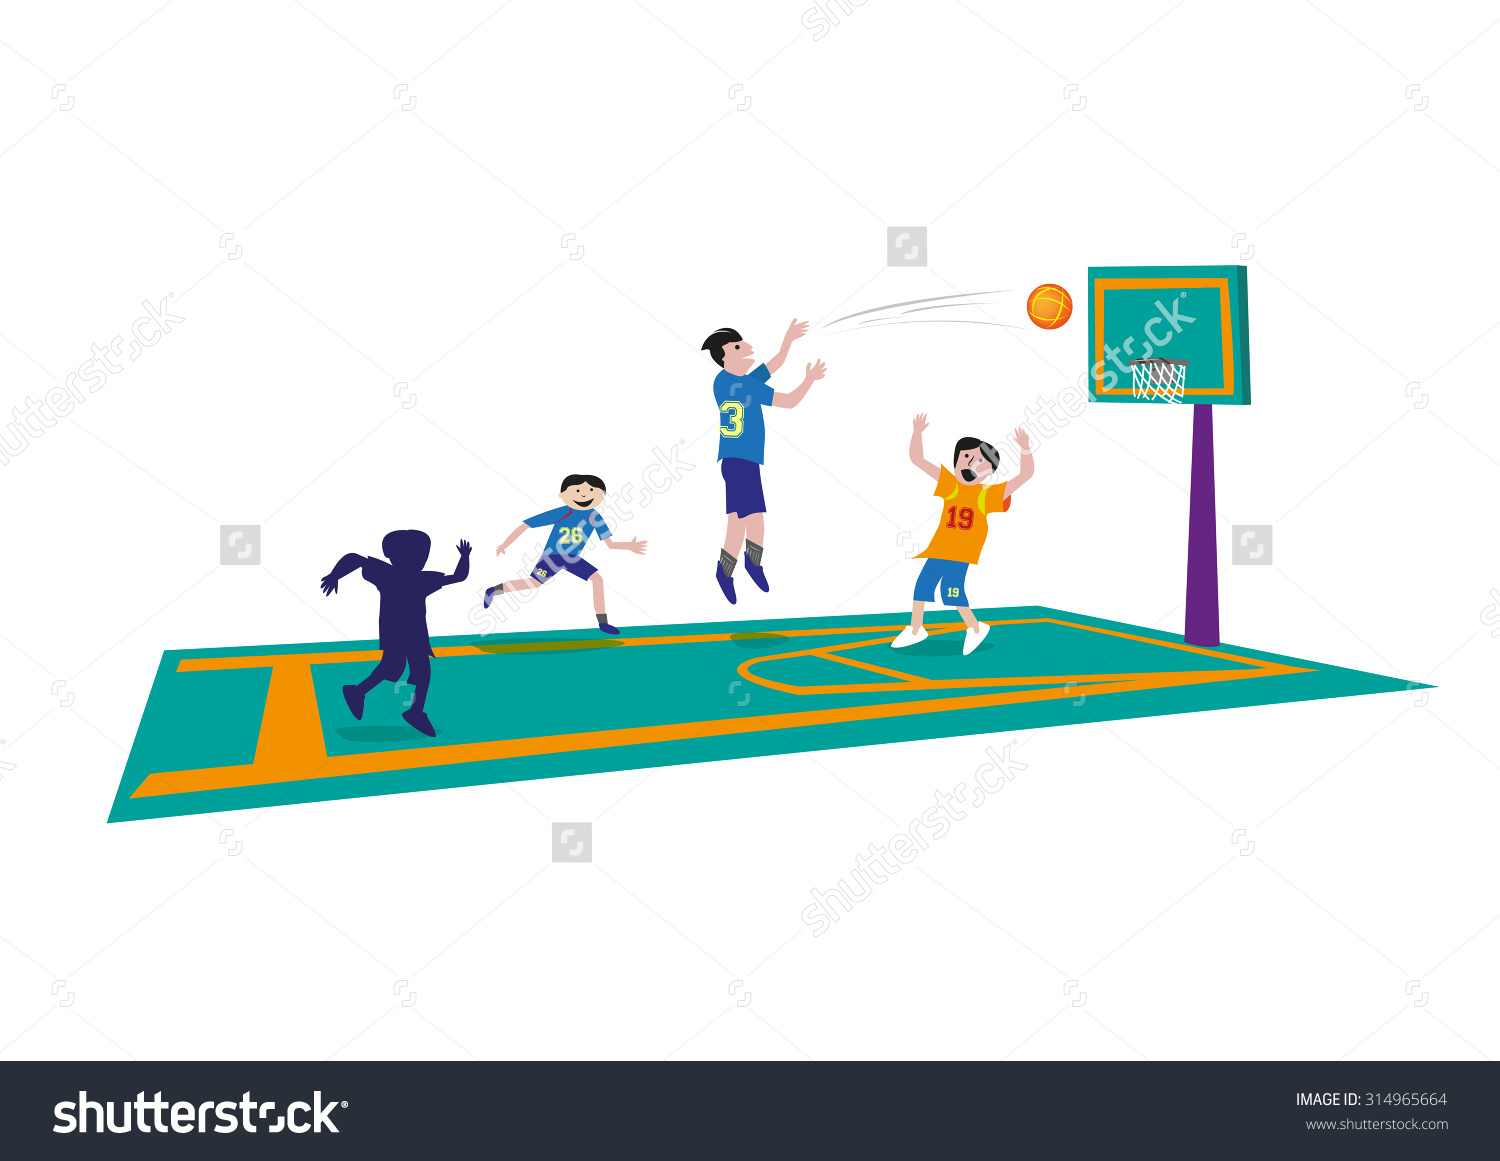 Clipart basketball game clipart image black and white download Basketball Game Concept Editable Clip Art Stock Vector 314965664 ... image black and white download